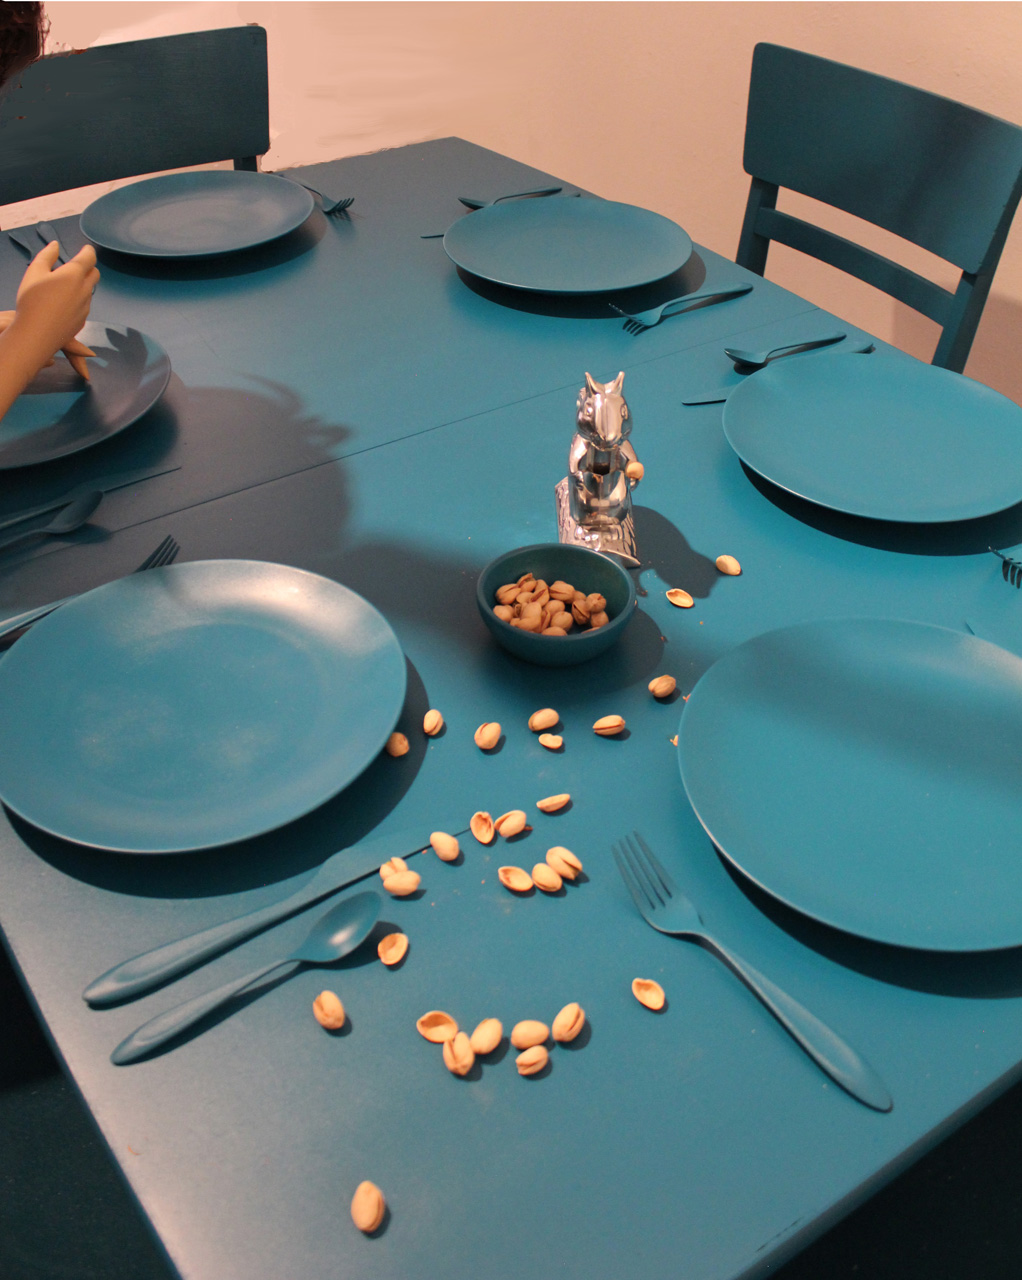 COMPANY FOR DINNER, sculpture, dimesions variable, color variable, laura phelps rogers.jpg